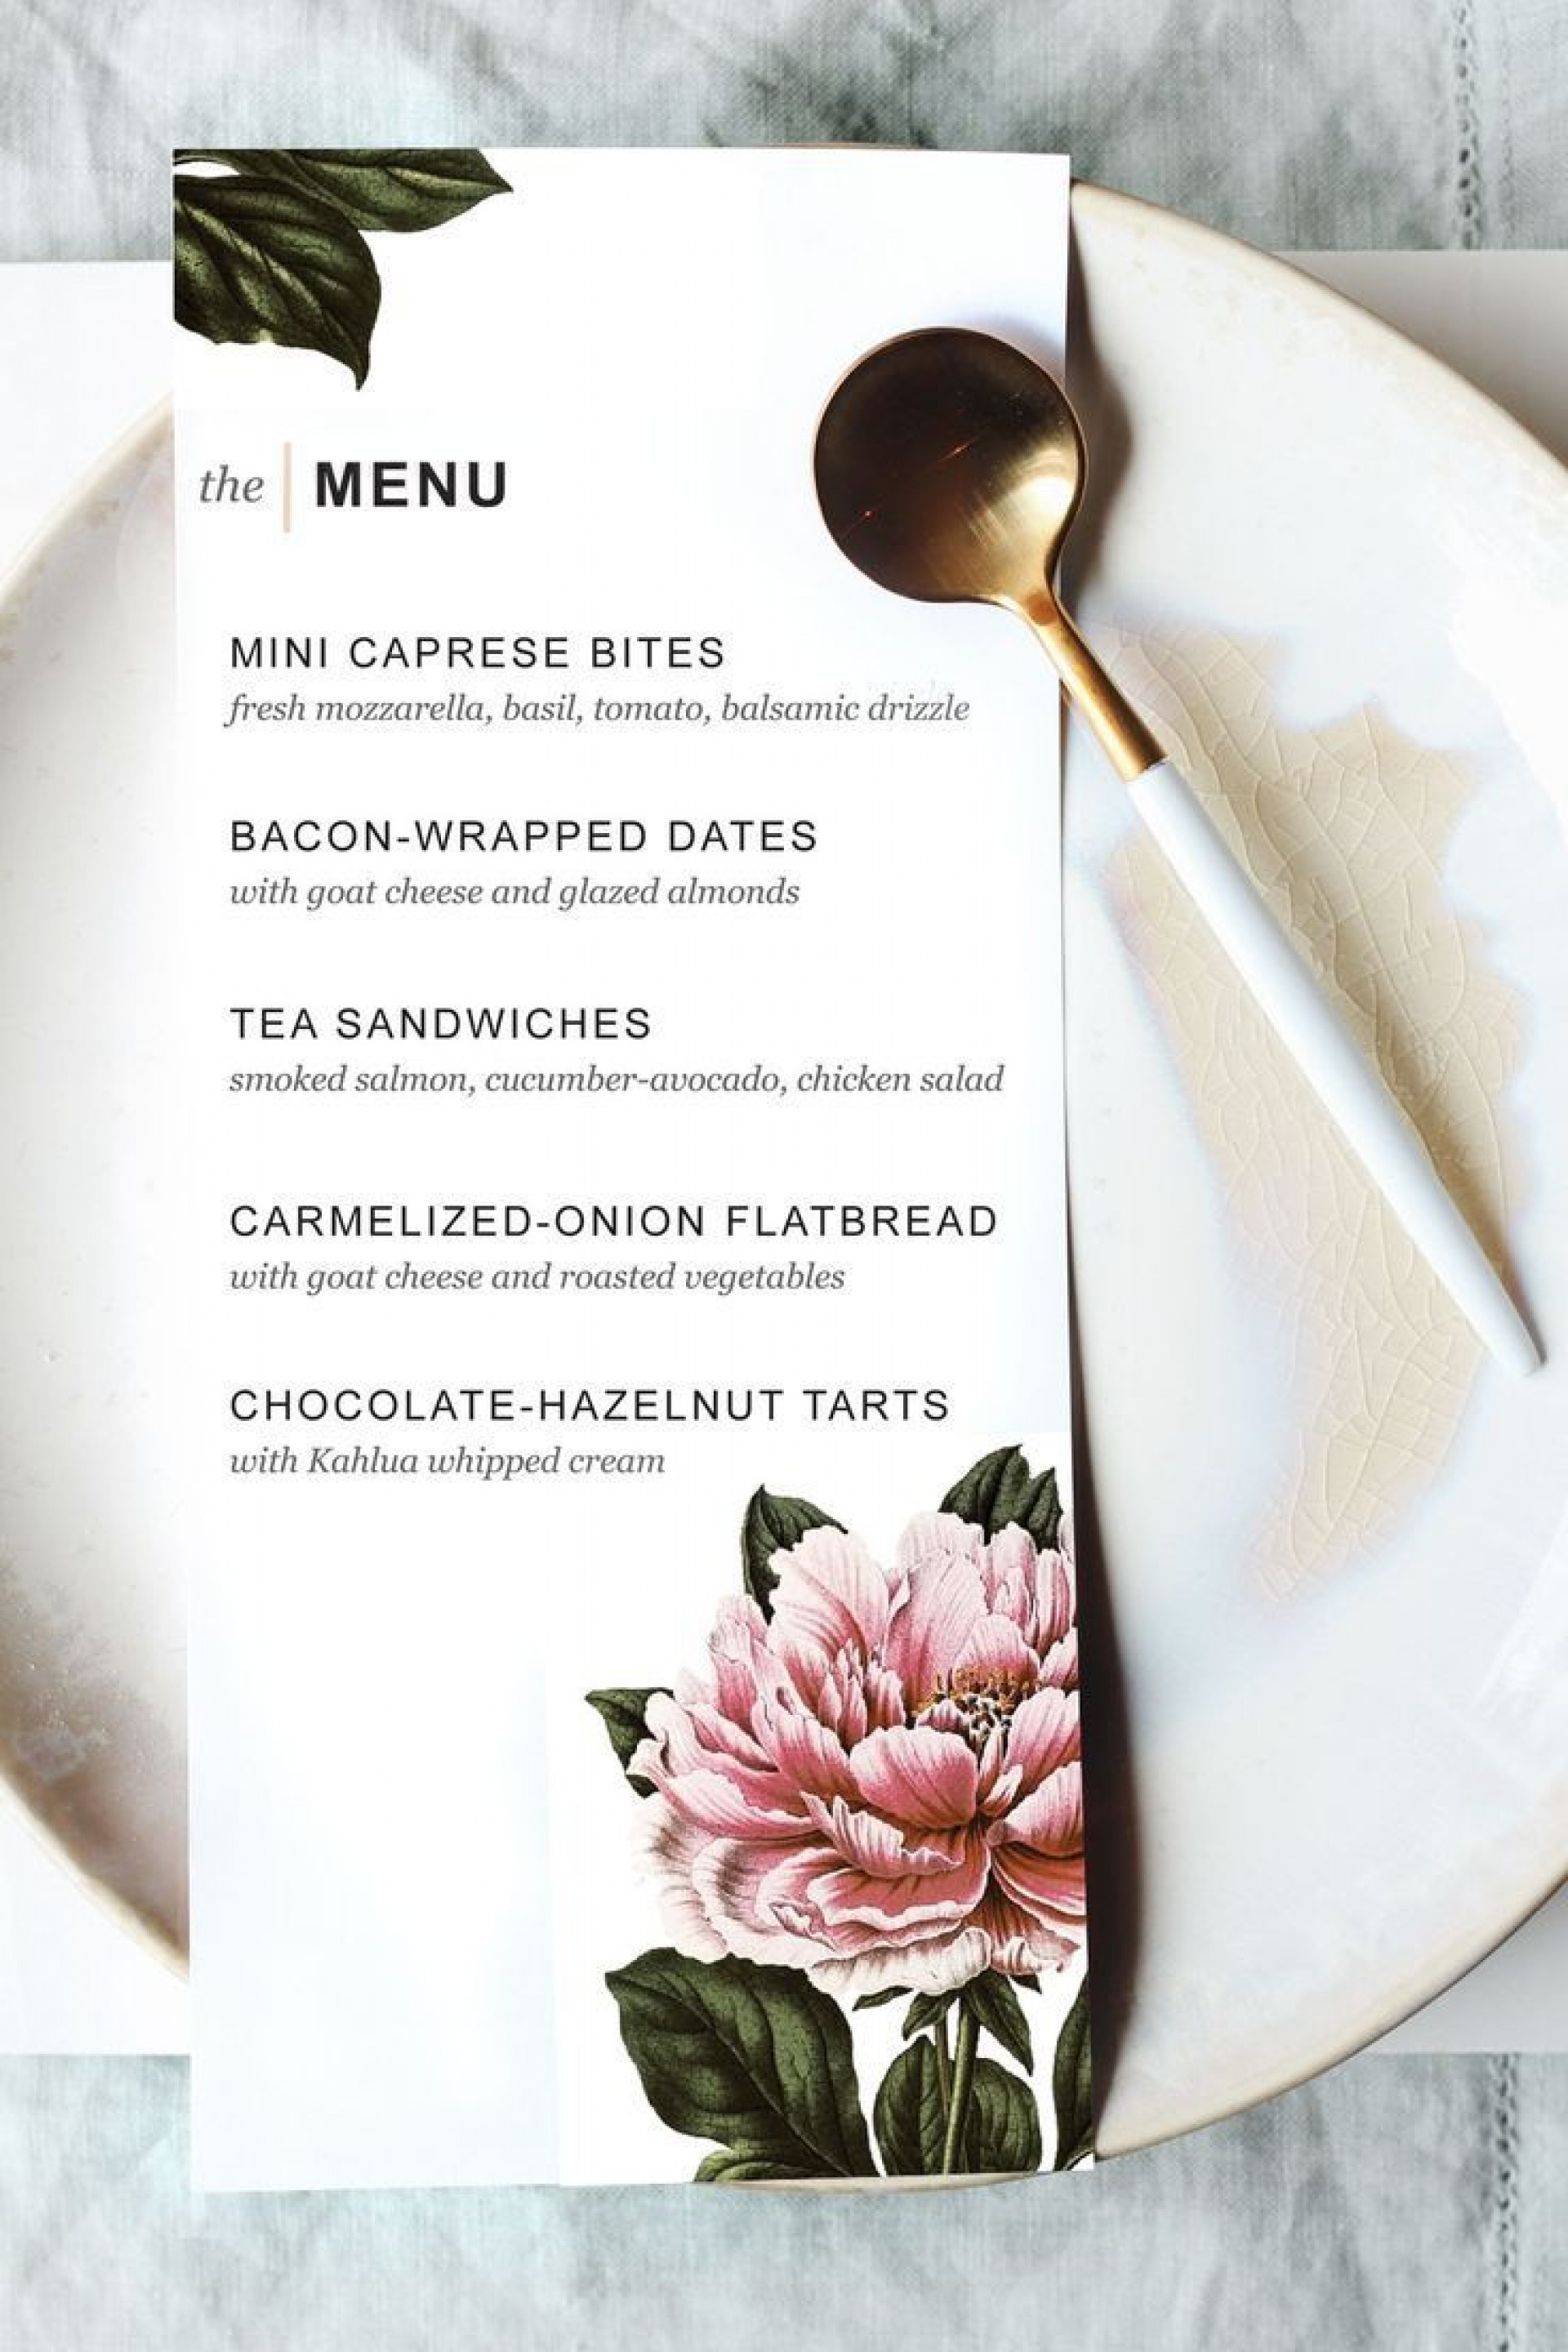 004 Archaicawful Dinner Party Menu Template Idea  Word Elegant Free Google Doc1920